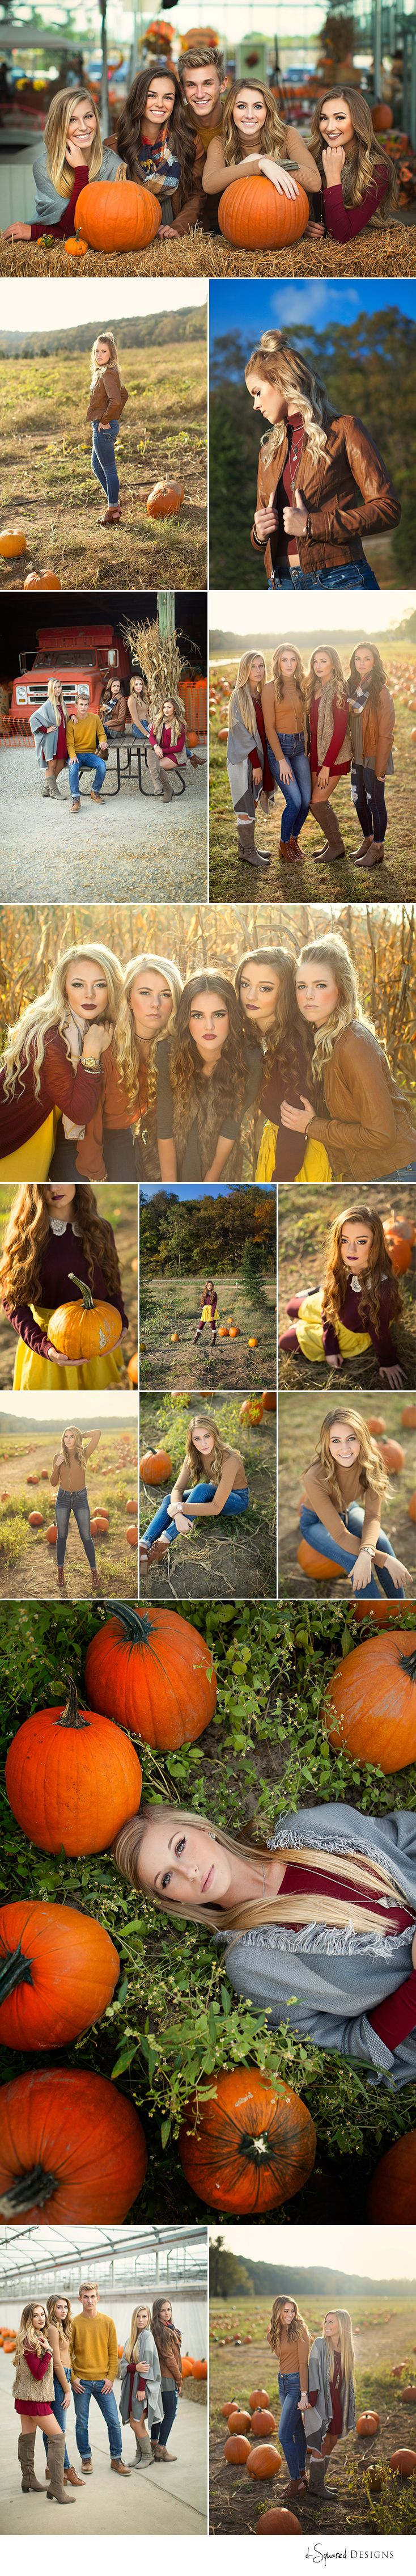 d-Squared Designs St. Louis, MO Senior Photography. Fall senior team idea. Senior team inspiration. Senior theme. Pumpkin patch. Fall ideas. Senior posing.